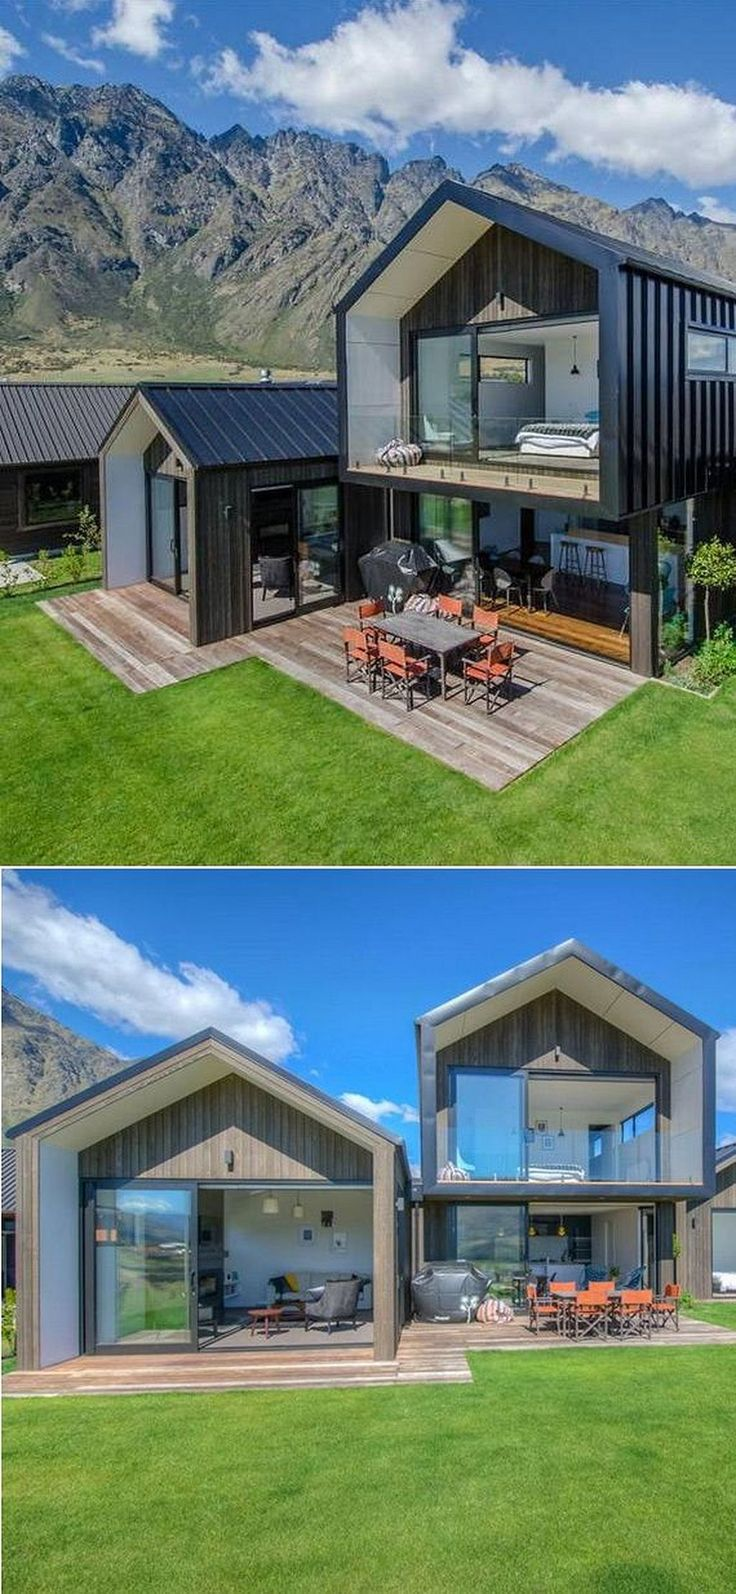 Awesome Ideas You Can Learn About Shipping Container Apartment 70